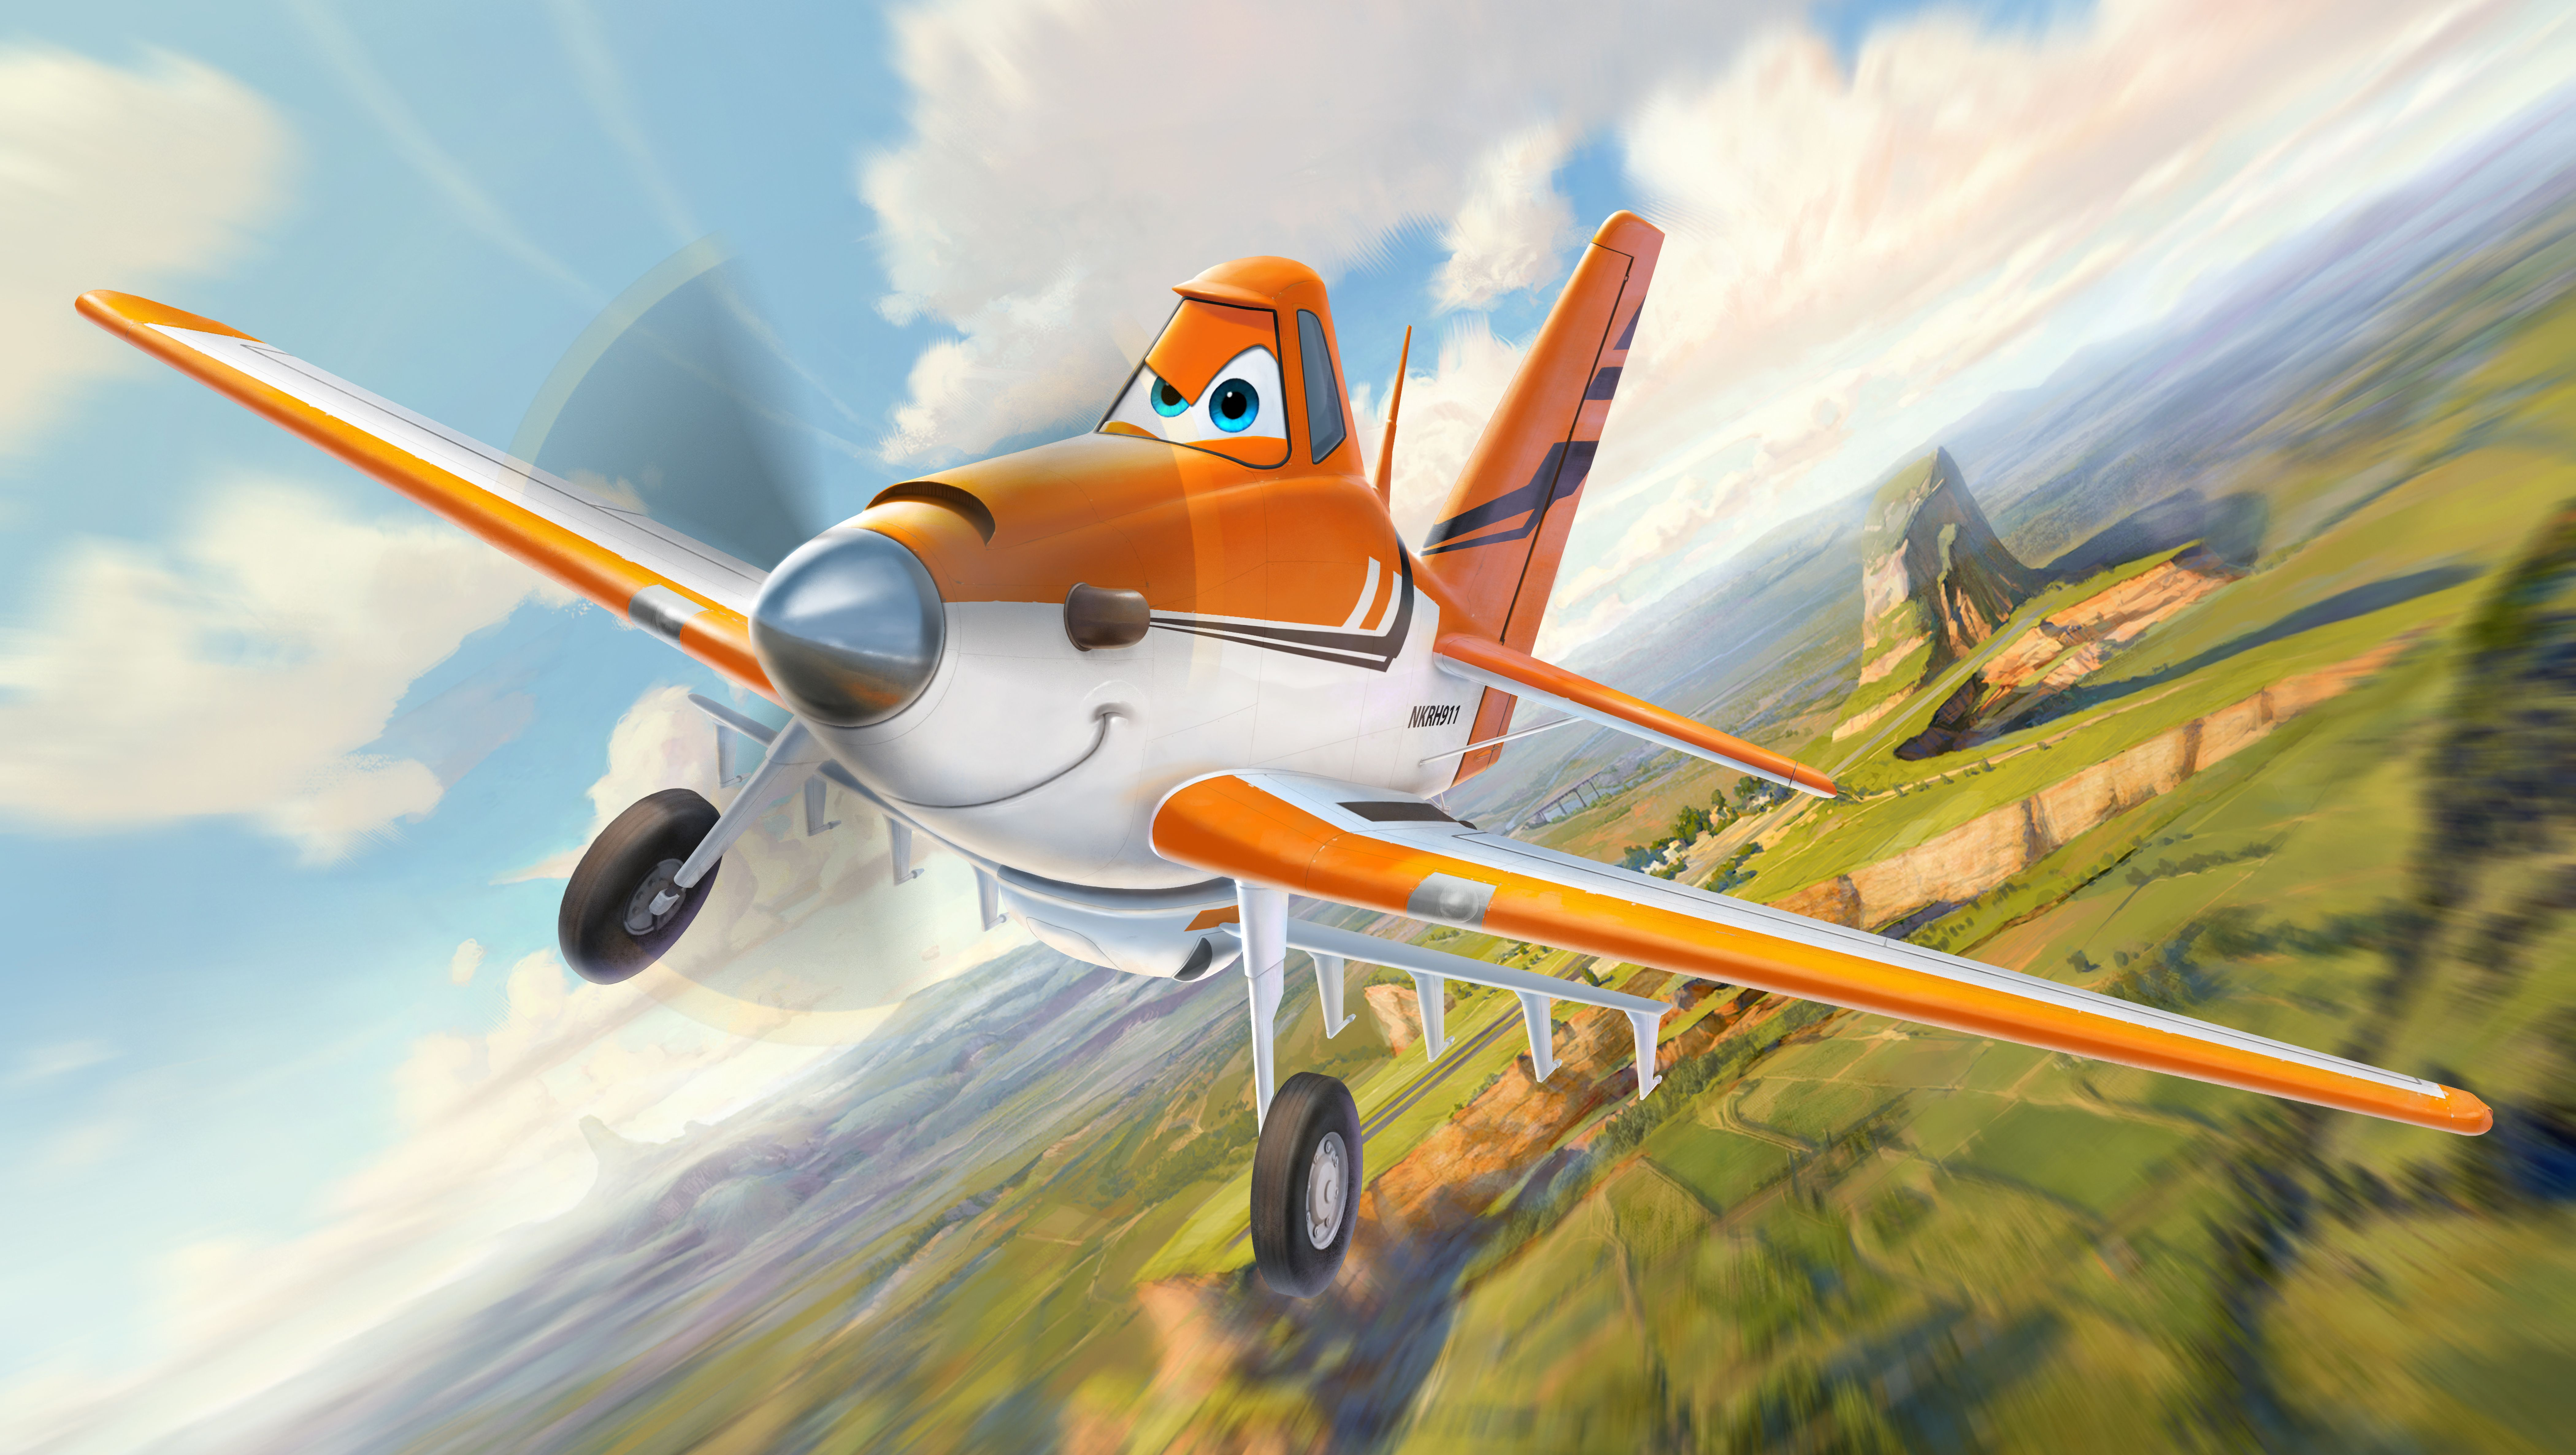 Uncategorized Dusty Planes planes dusty flying jpg disney 5th birthday explore parties and more